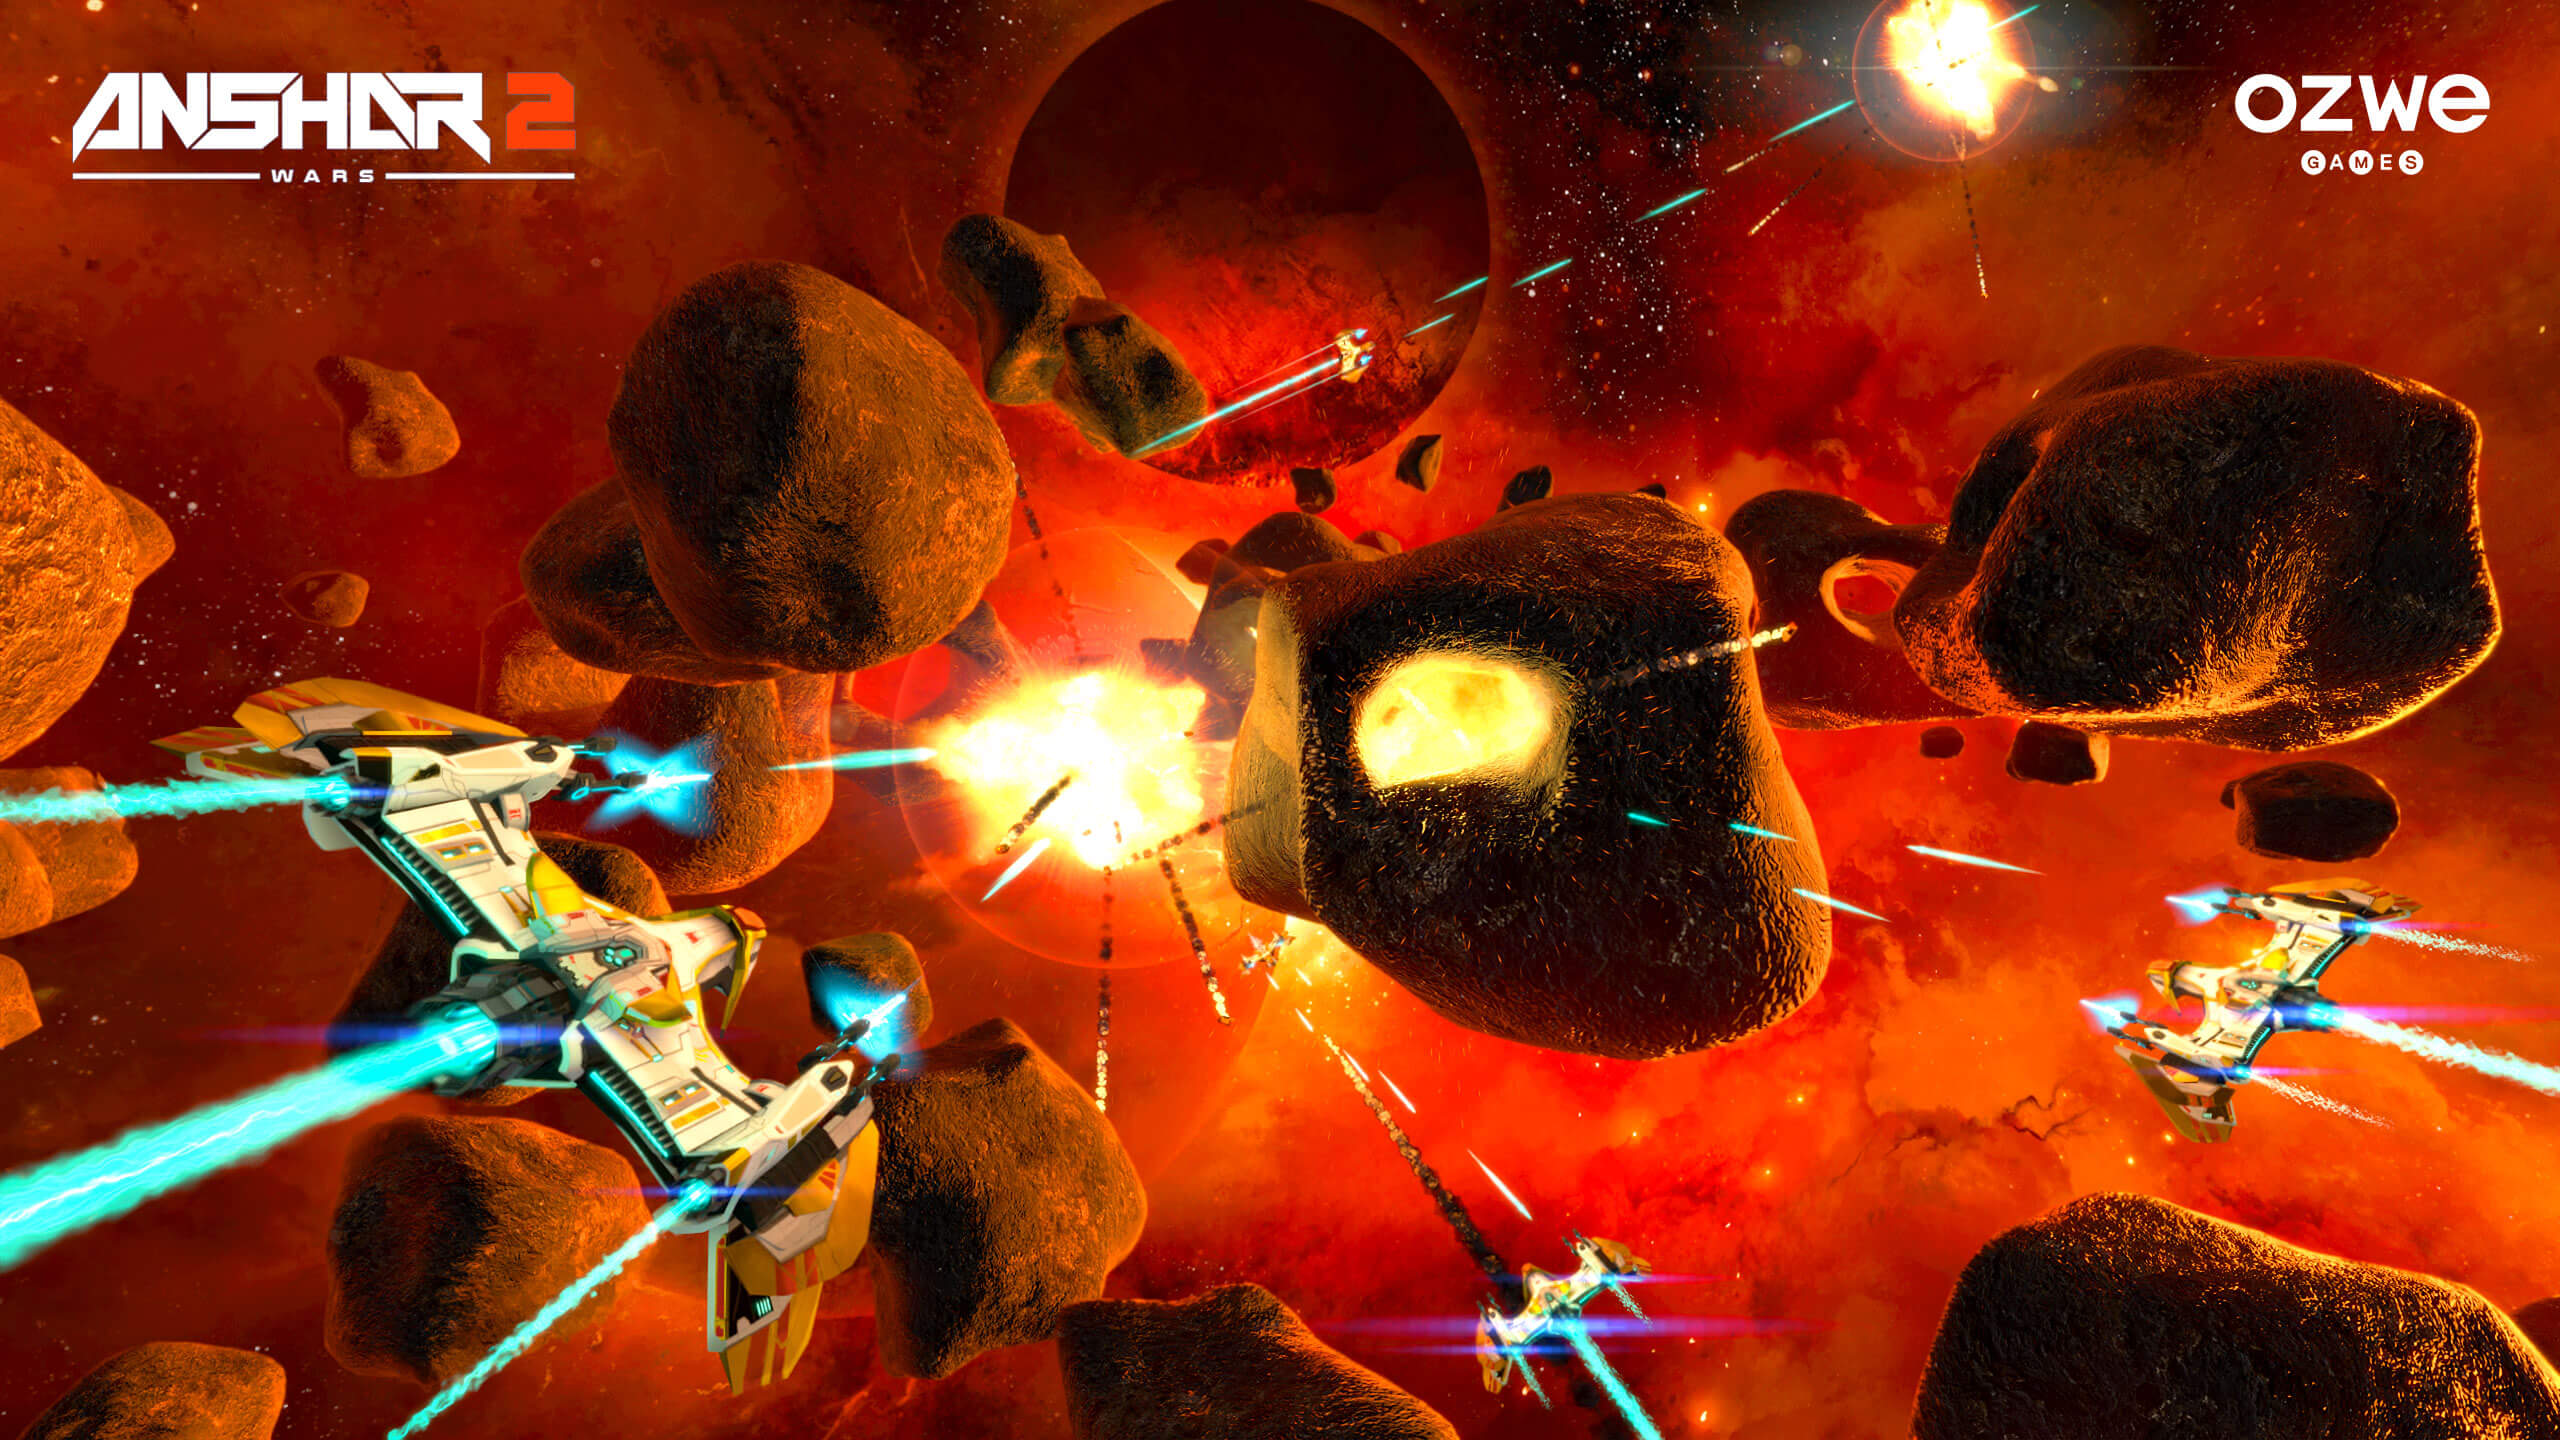 Anshar Wars 2 - Oculus Rift screenshot